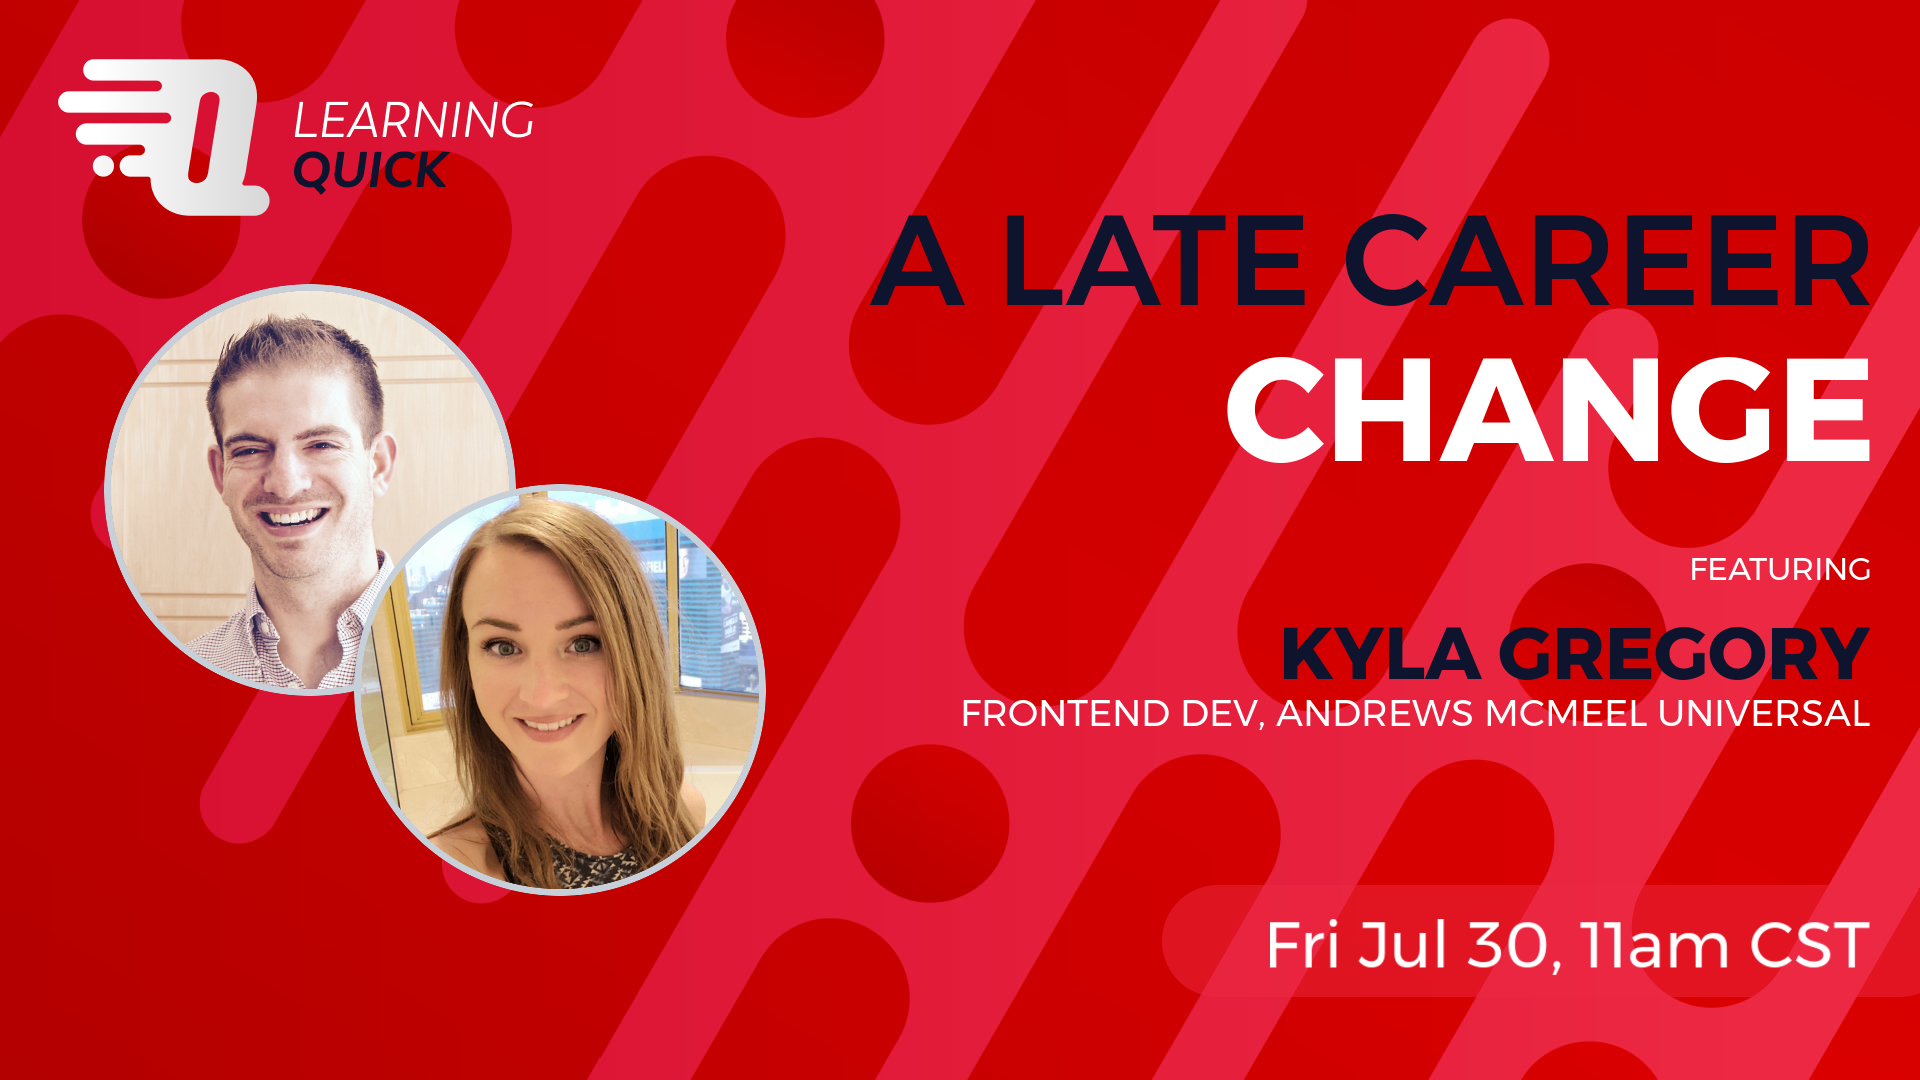 A Late Career Change with Kyla Gregory